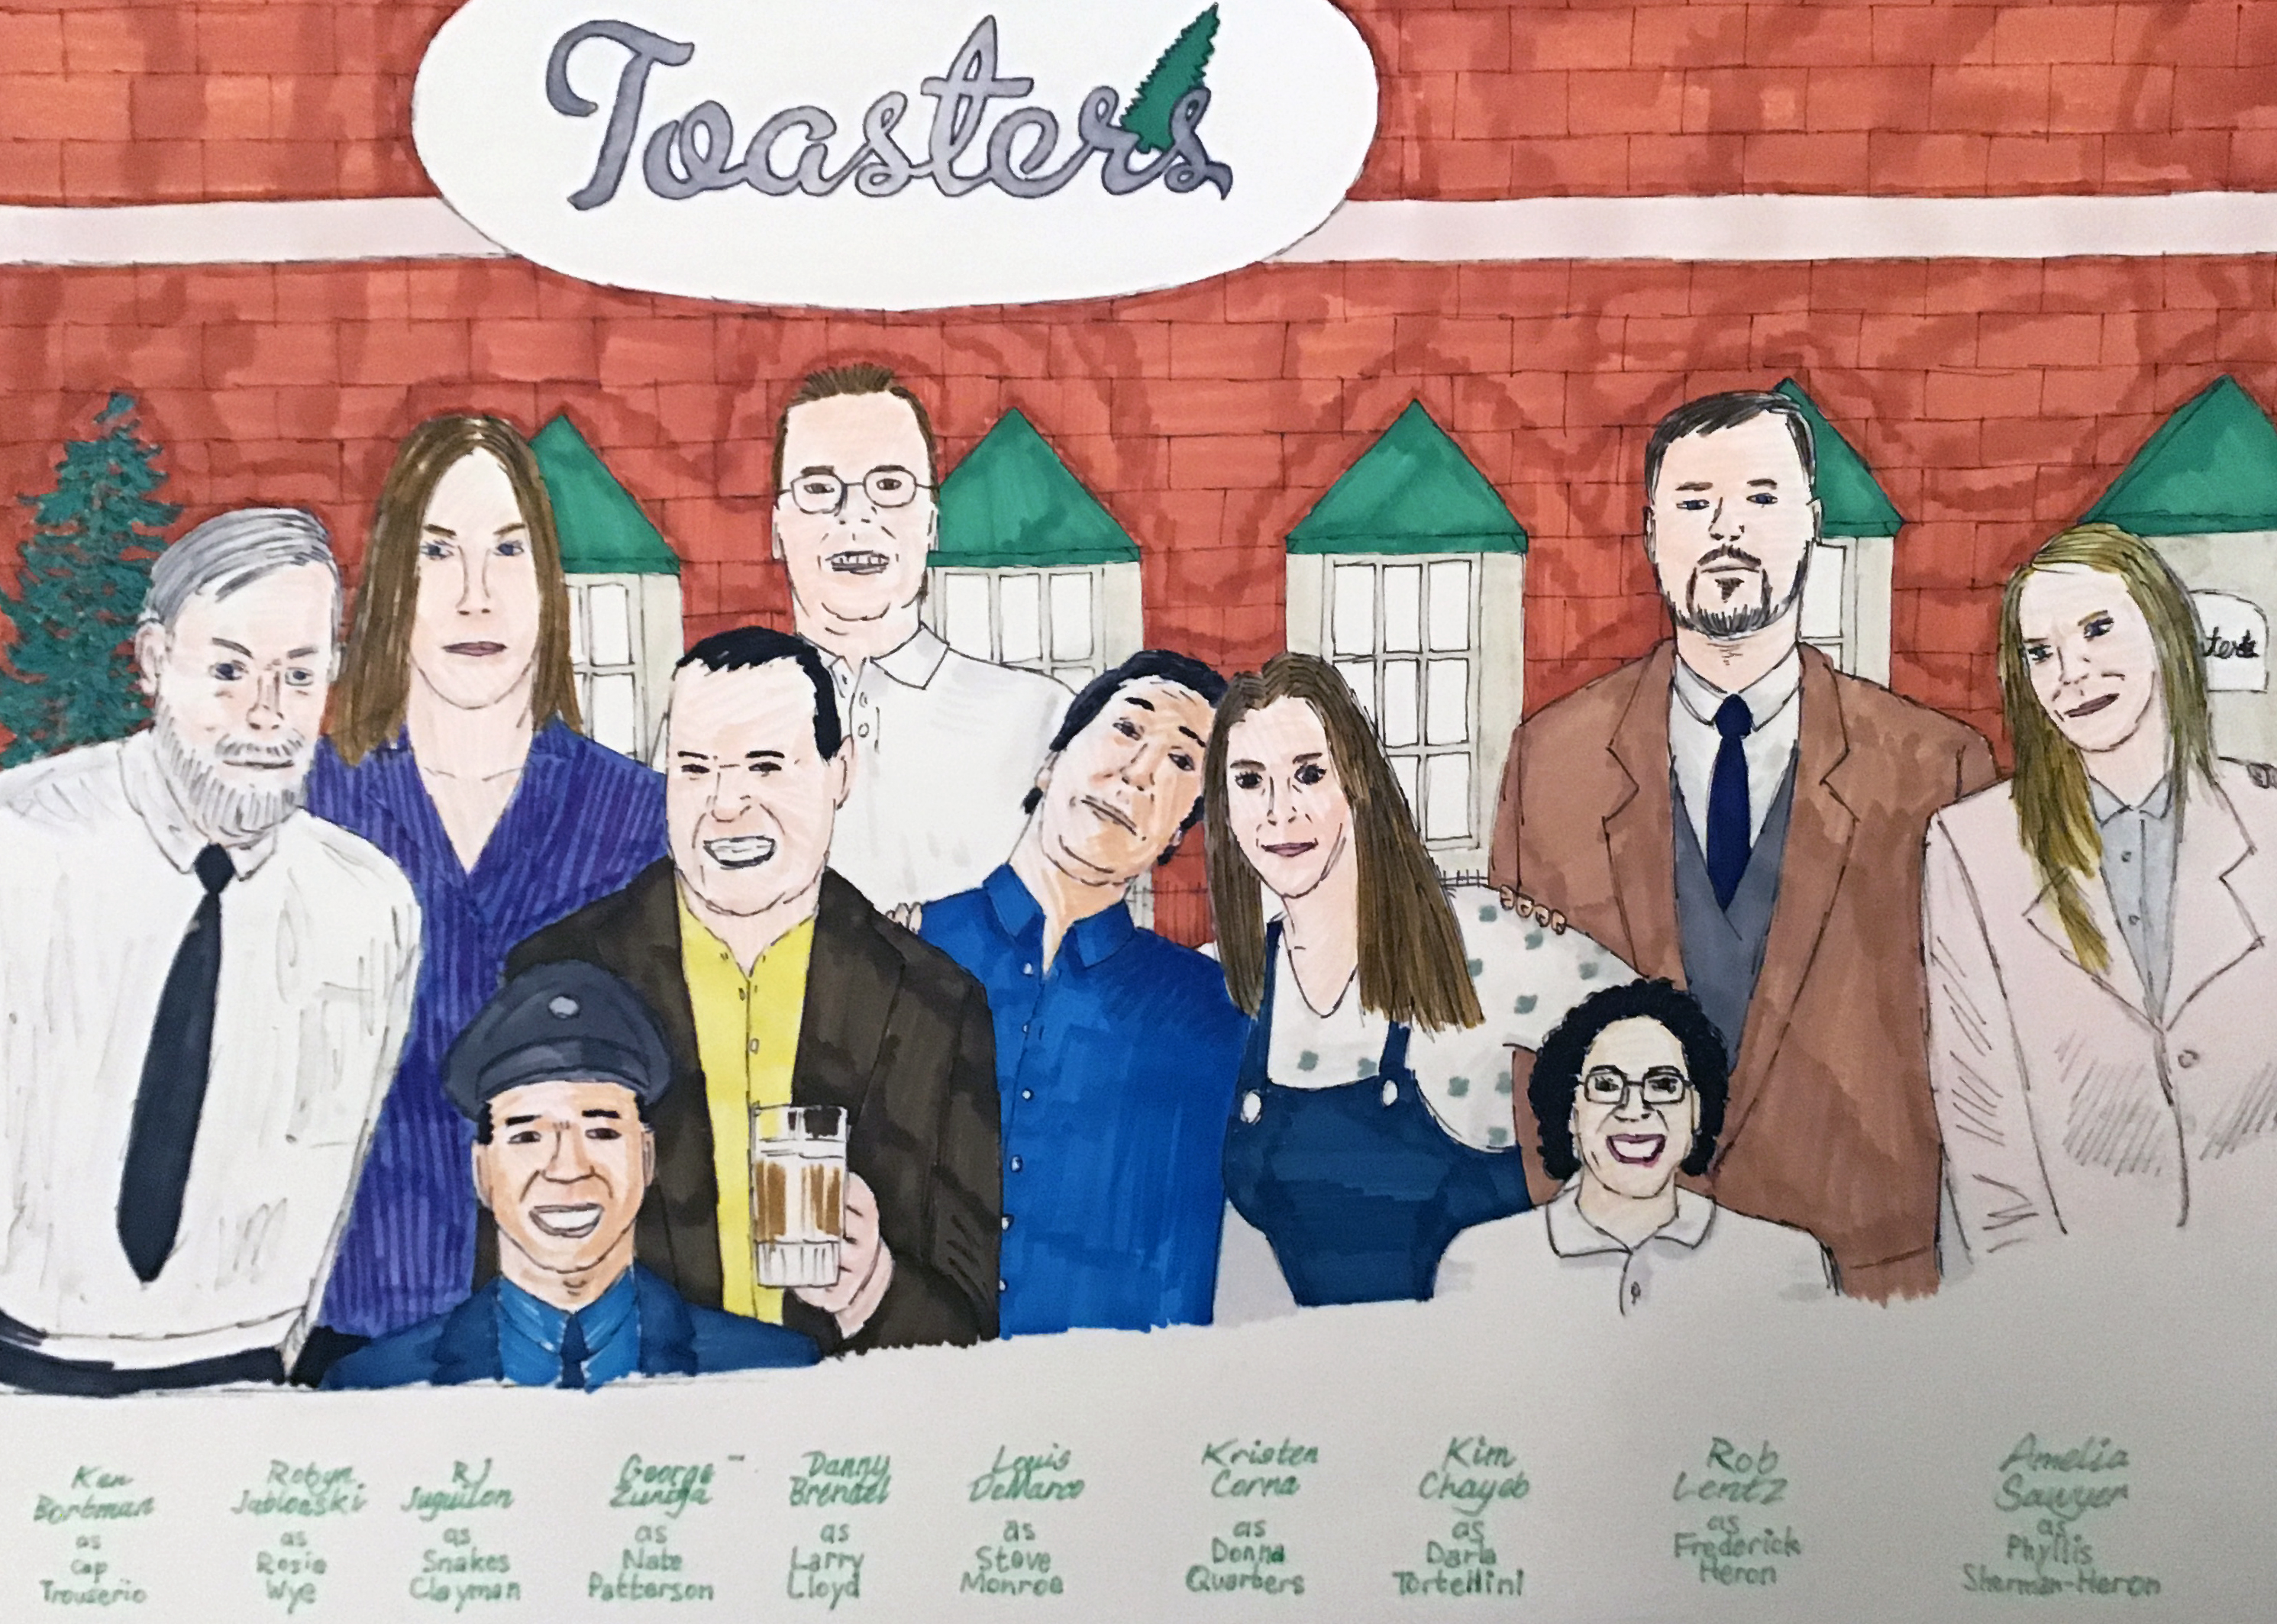 Toasters LD 2020 full cast